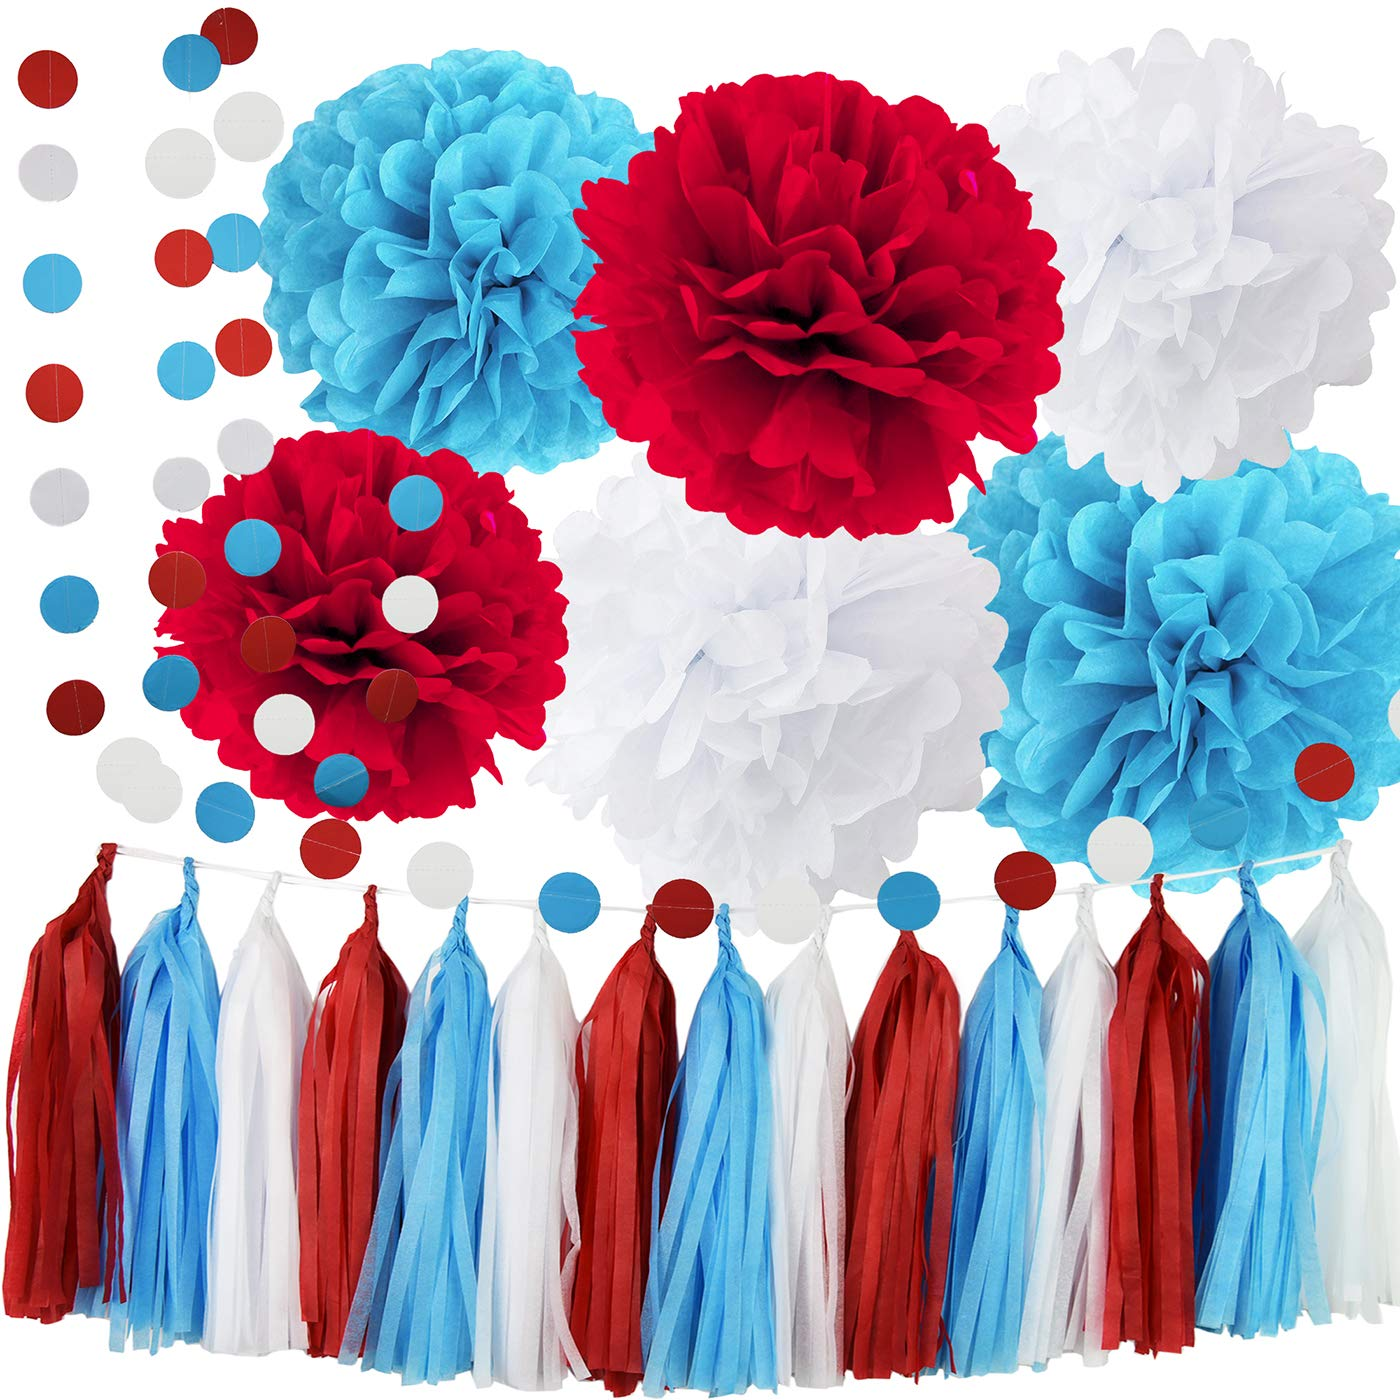 Dr Seuss Cat in The Hat Party/Dr Suess Decor Bridal Shower Decorations Turquoise White Red Tissue Pom Pom Circle Garland for Baby Shower Decorations/Birthday Decorations/Aqua Red Wedding Decorations by Qian's Party